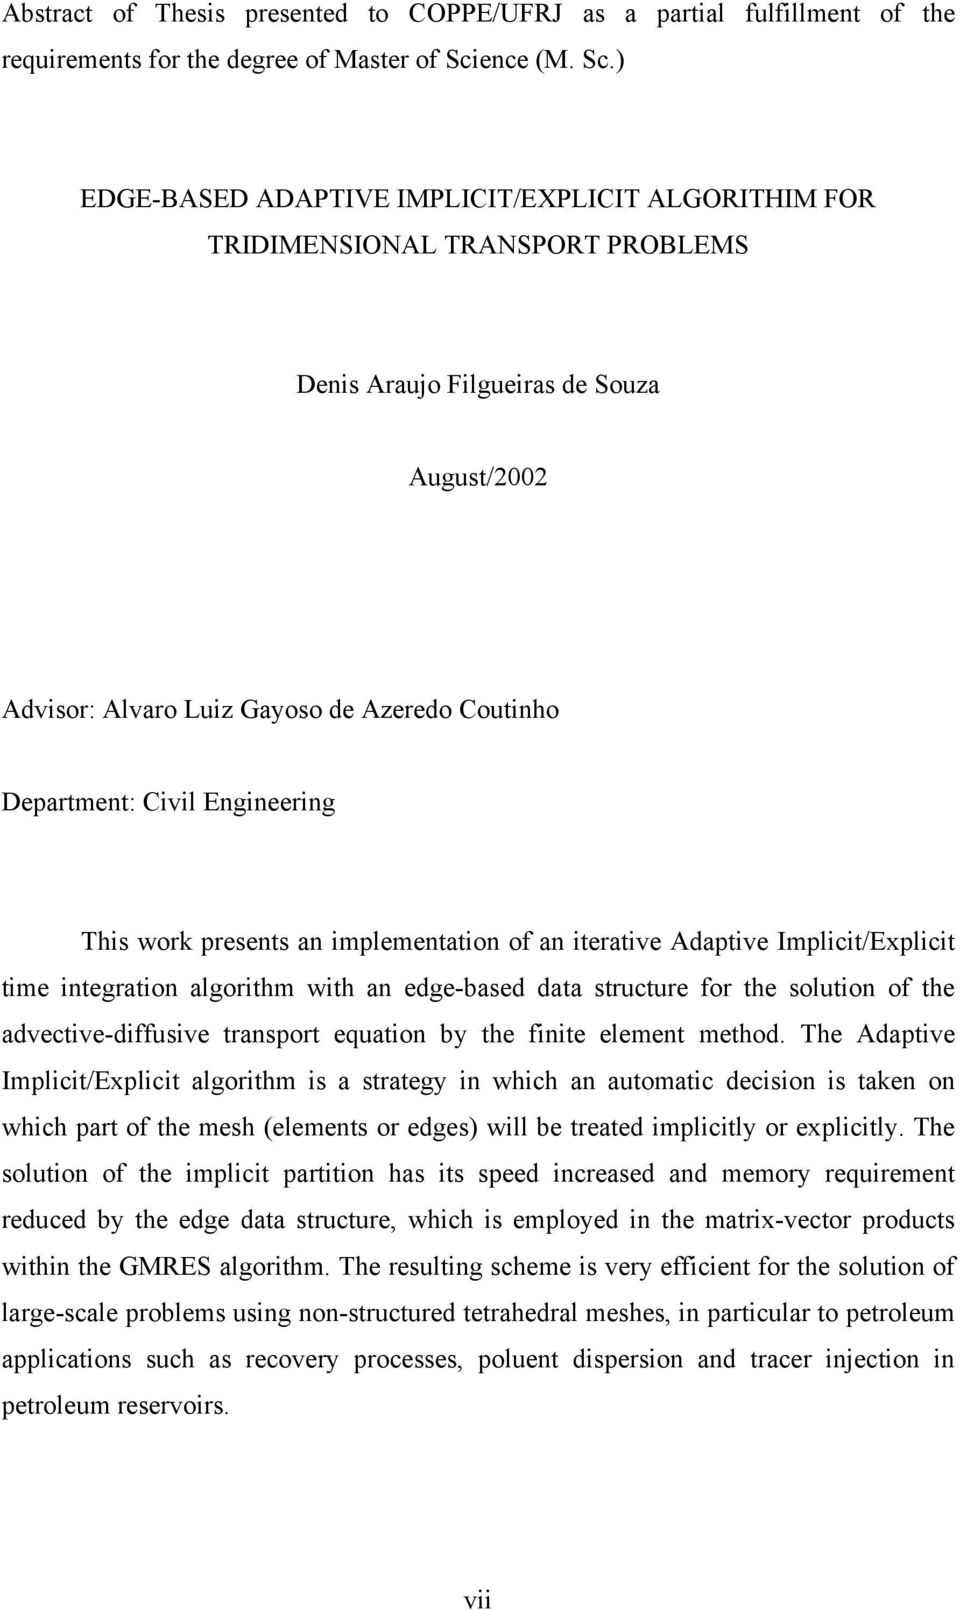 ) EDGE-BASED ADAPTIVE IMPLICIT/EXPLICIT ALGORITHIM FOR TRIDIMENSIONAL TRANSPORT PROBLEMS Dnis Araujo Filguiras d Soua August/00 Advisor: Alvaro Lui Gaoso d Ardo Coutinho Dpartmnt: Civil Enginring